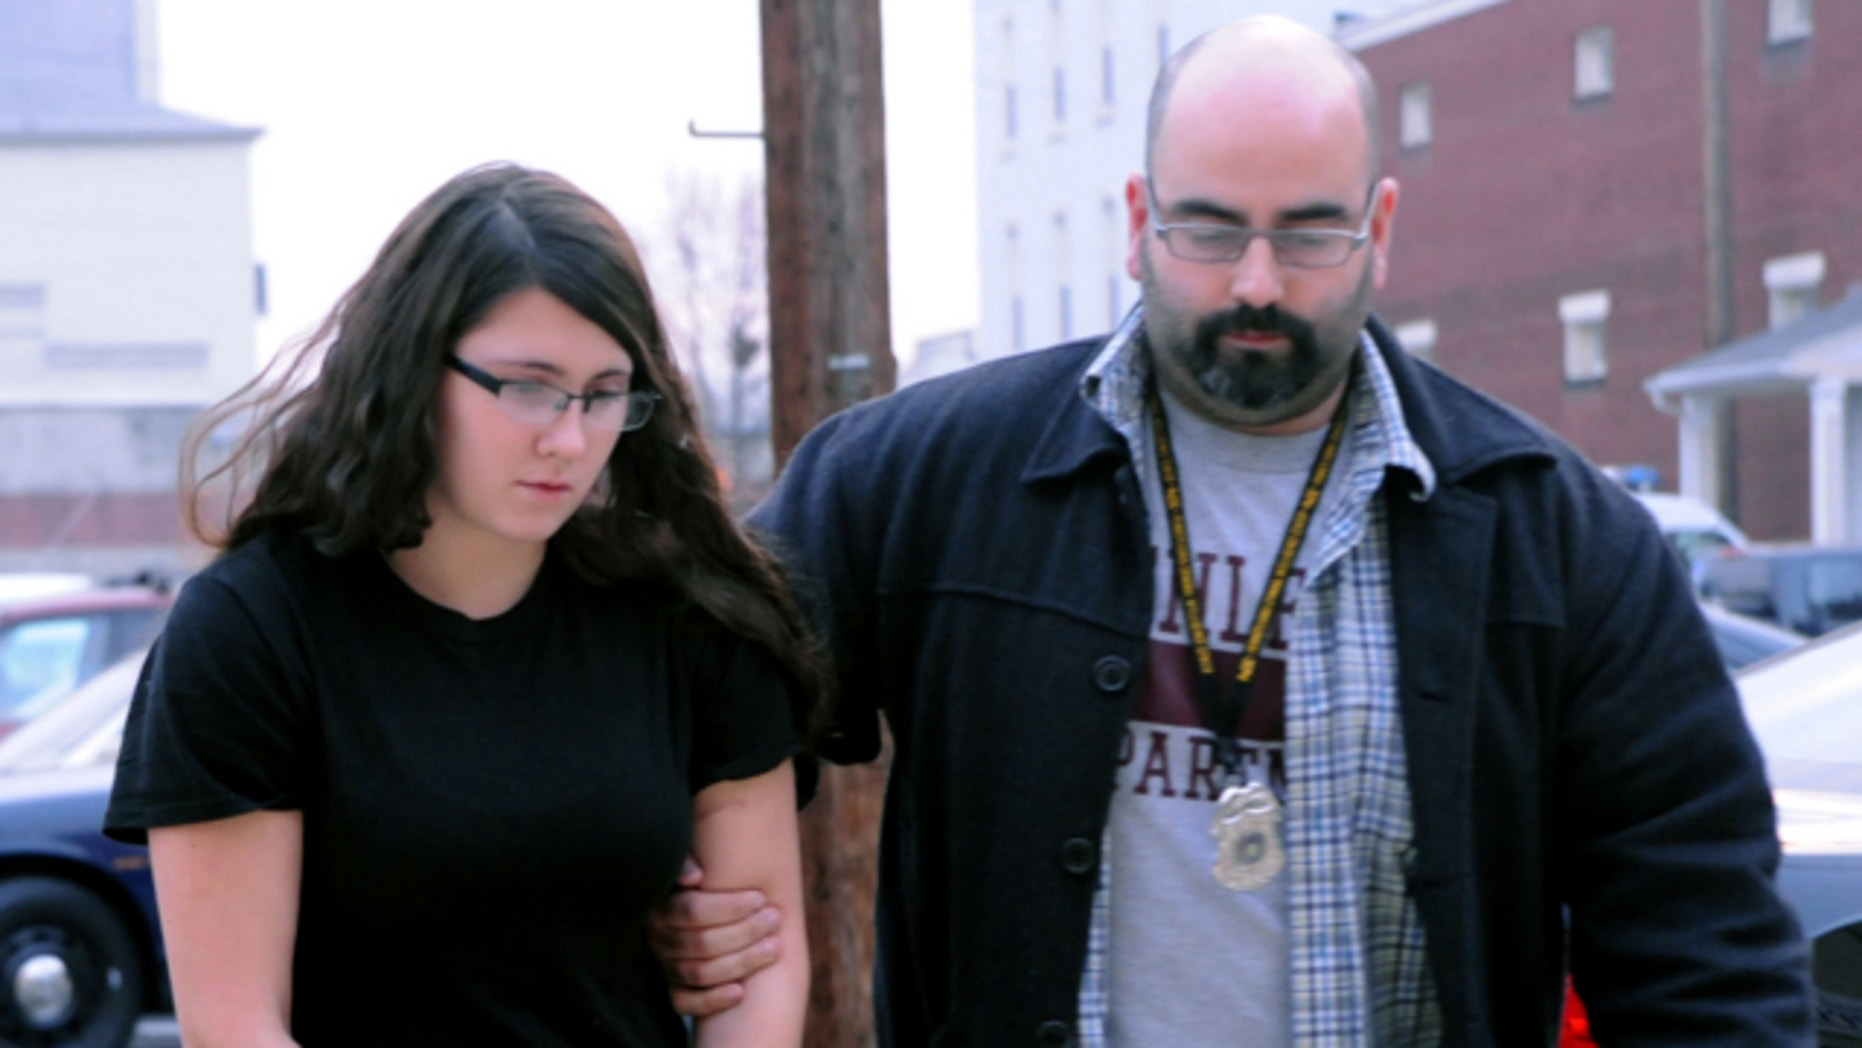 Dec. 3, 2013: Miranda K. Barbour is led into District Judge Ben Apfelbaum's office in Sunbury, Pa., by Sunbury policeman Travis Bremigen. Barbour is charged in the murder of Troy LaFerrara, whose body was found in a backyard in Sunbury, in November.